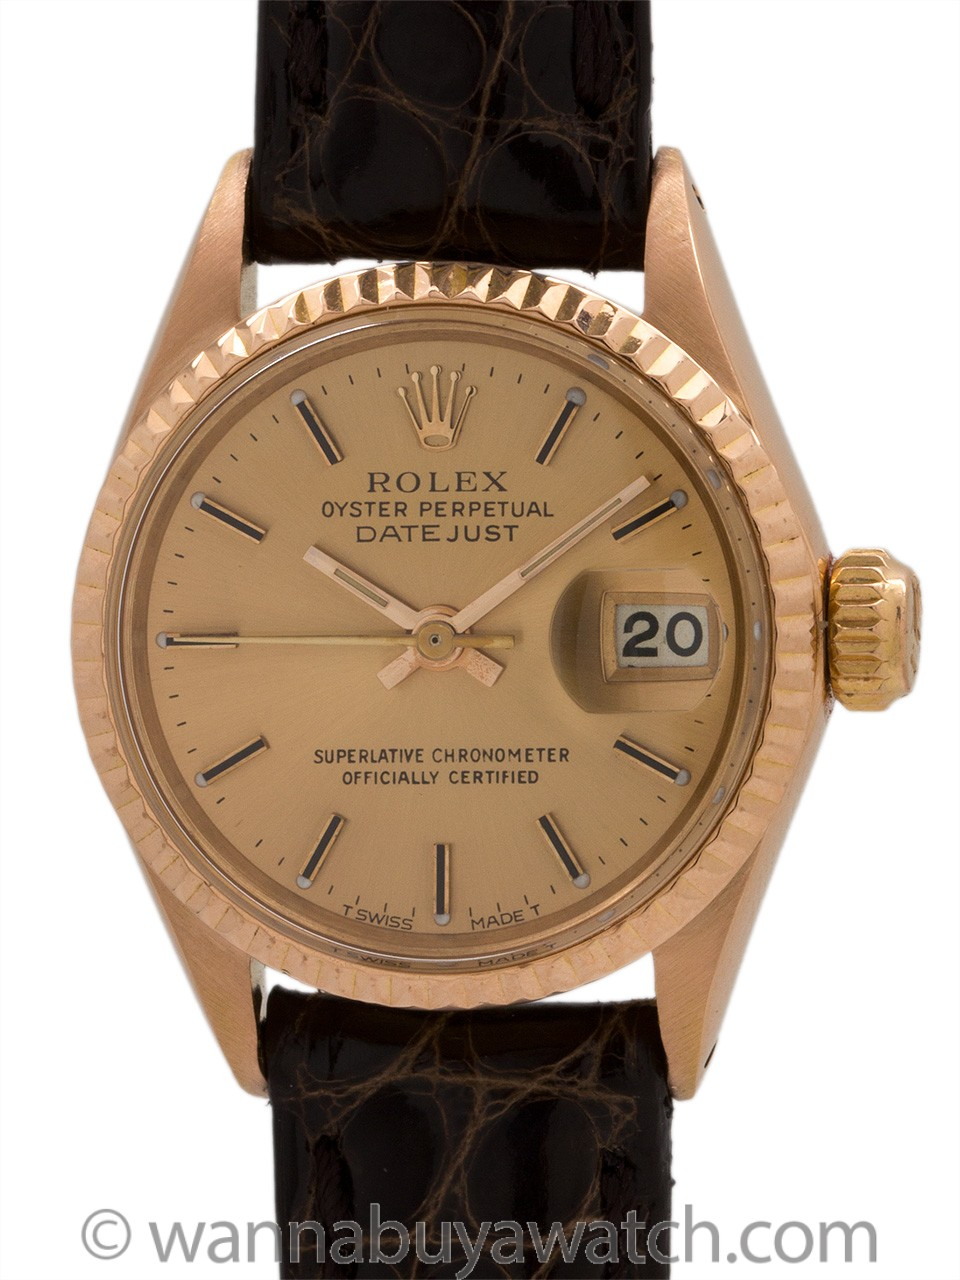 Lady's Rolex 18K Rose Gold Datejust ref 6917 circa 1987